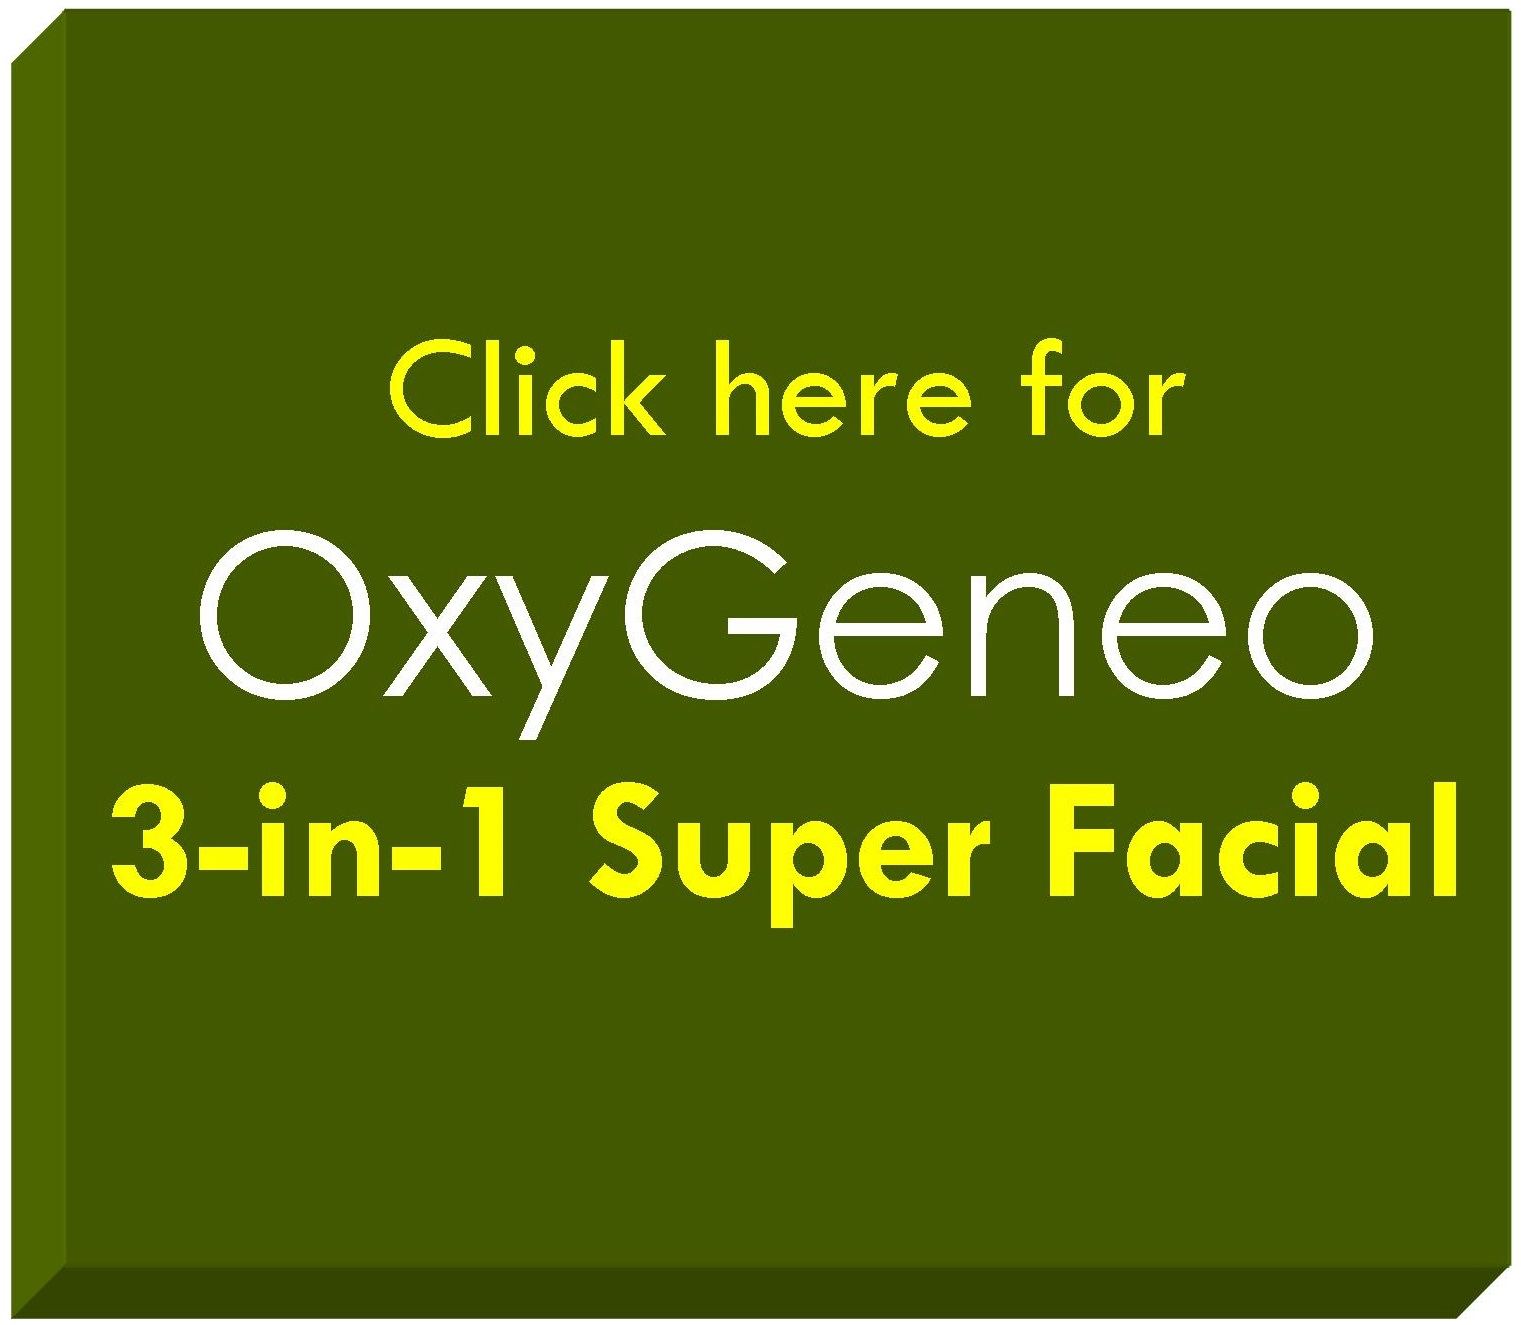 oxygeneo-3-in-1 Super Facial